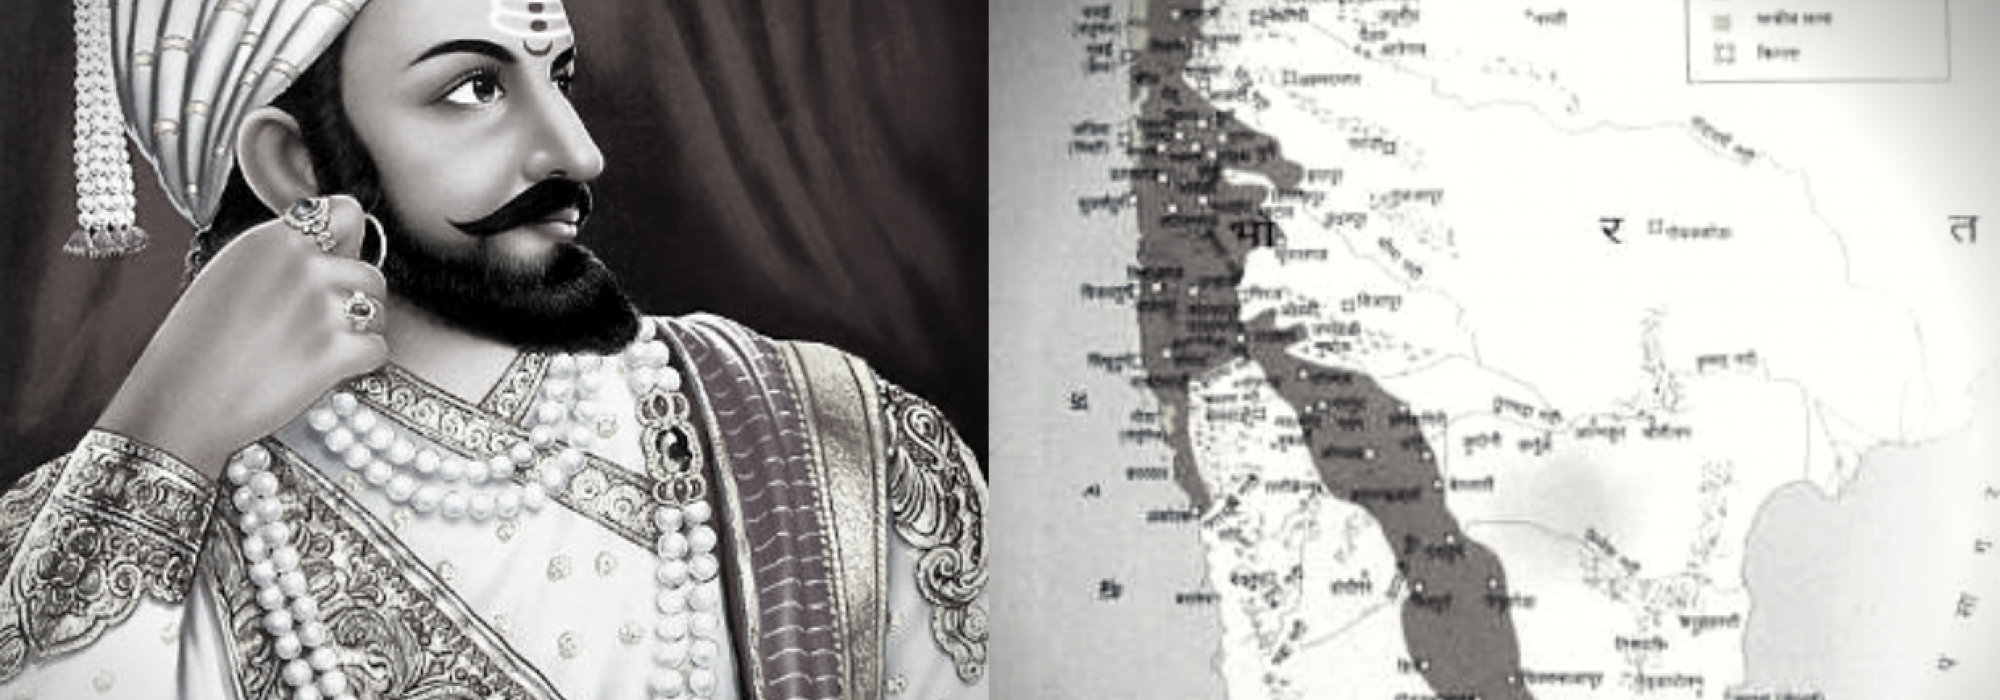 Shivaji and his Empire